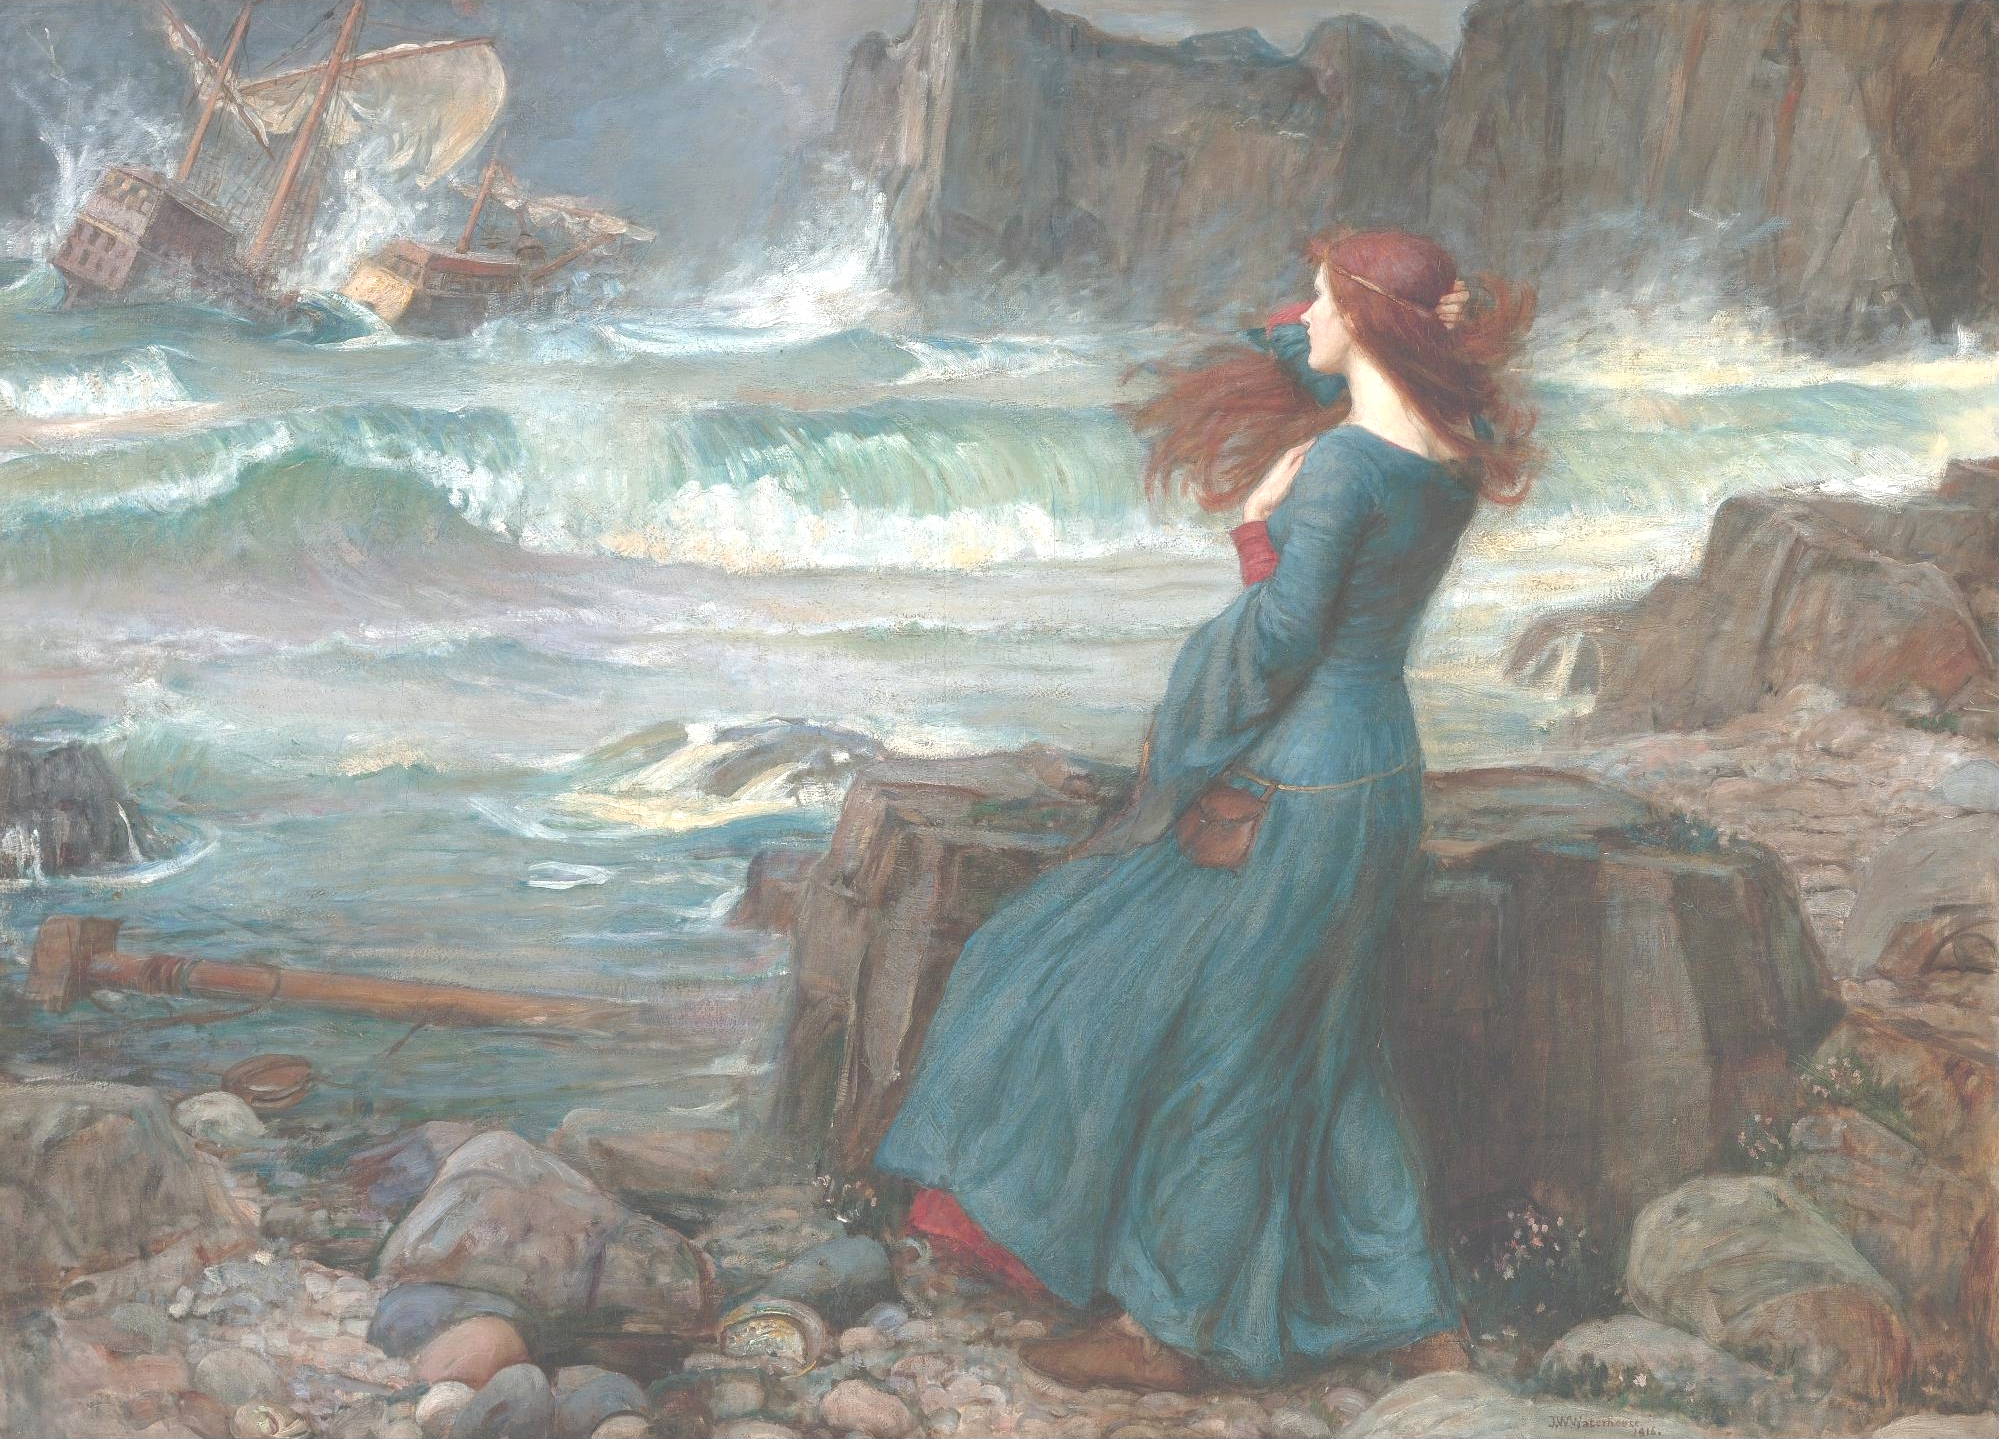 John William Waterhouse Miranda - The Tempest (1916) Pubblico dominio, https://commons.wikimedia.org/w/index.php?curid=720595